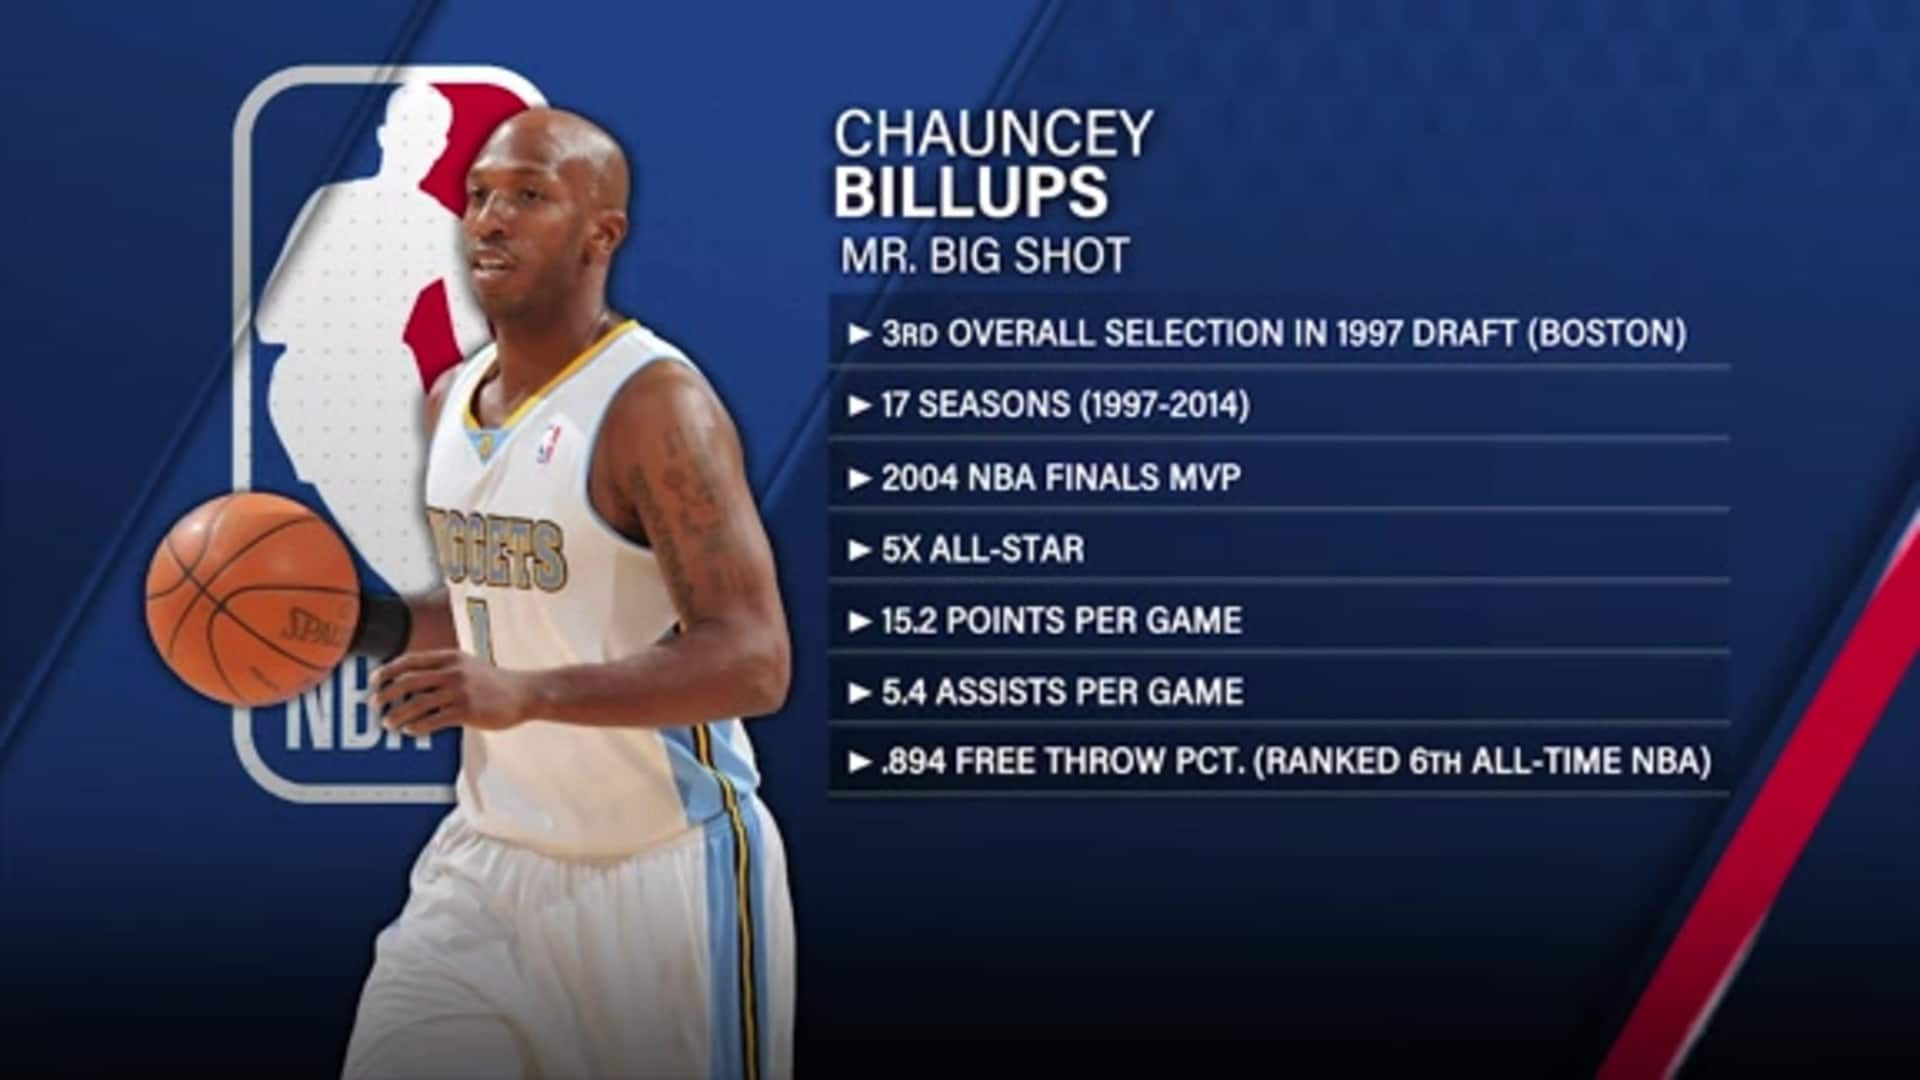 Chauncey Billups interview with Scott Hastings